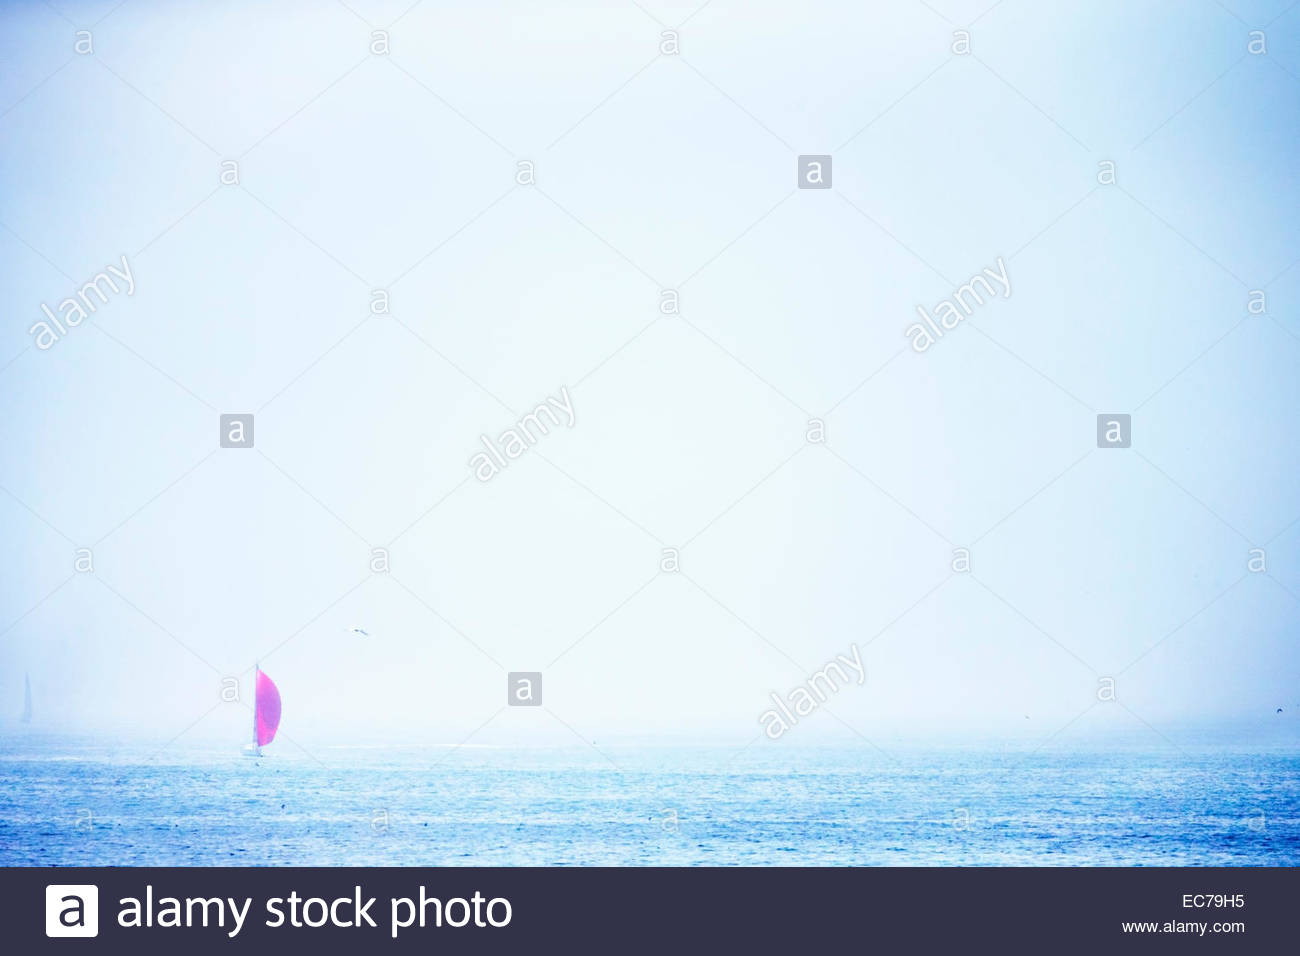 Red sail boat in the distance at sea - Stock Image